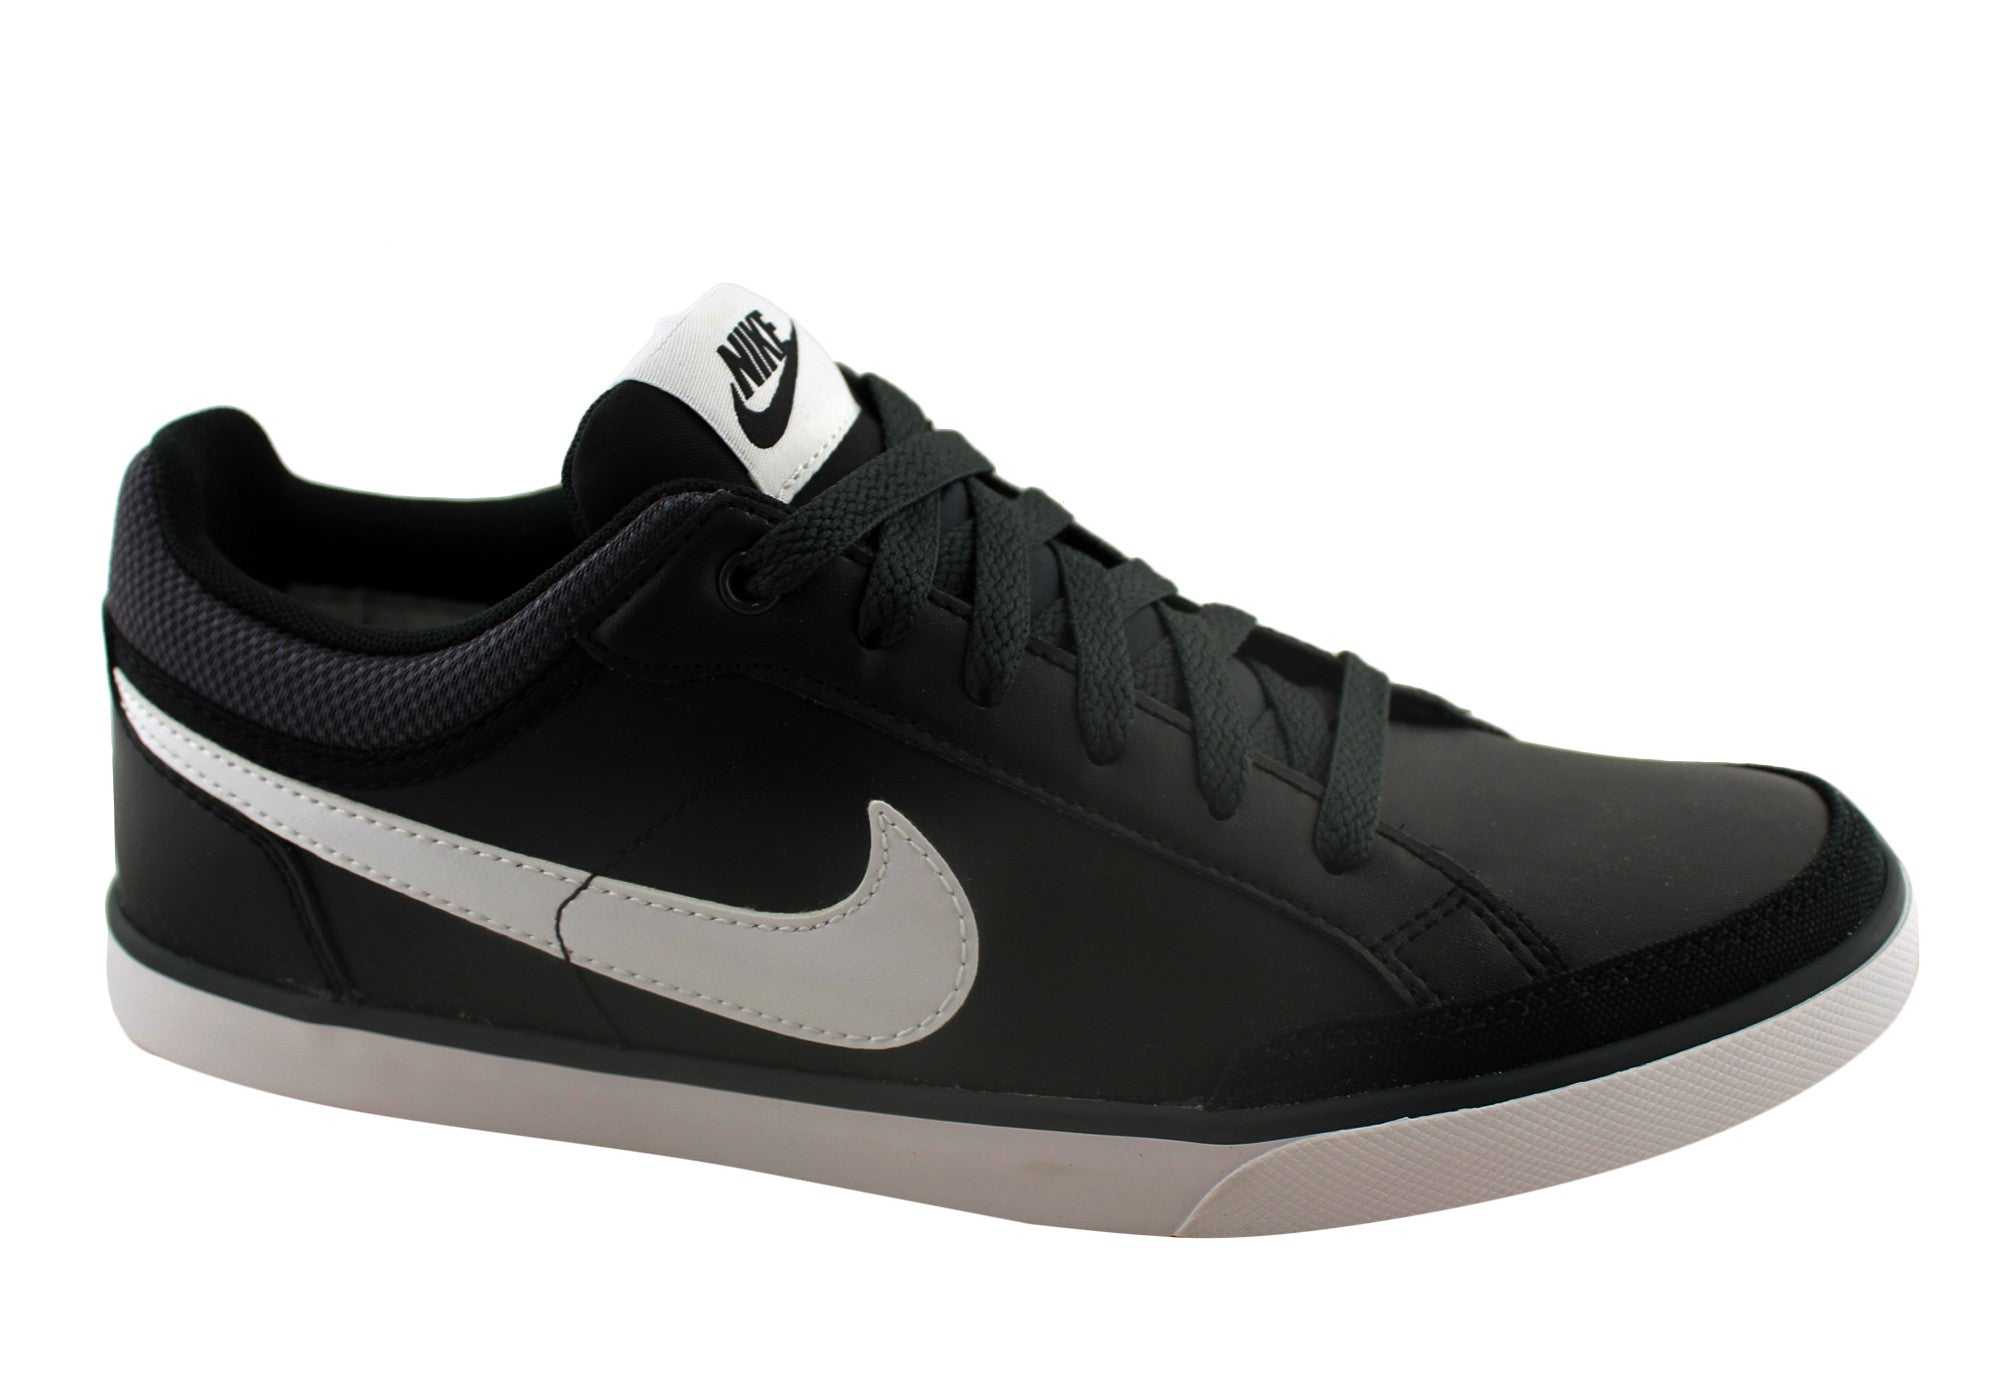 Nike Womens Capri III Leather Sneakers